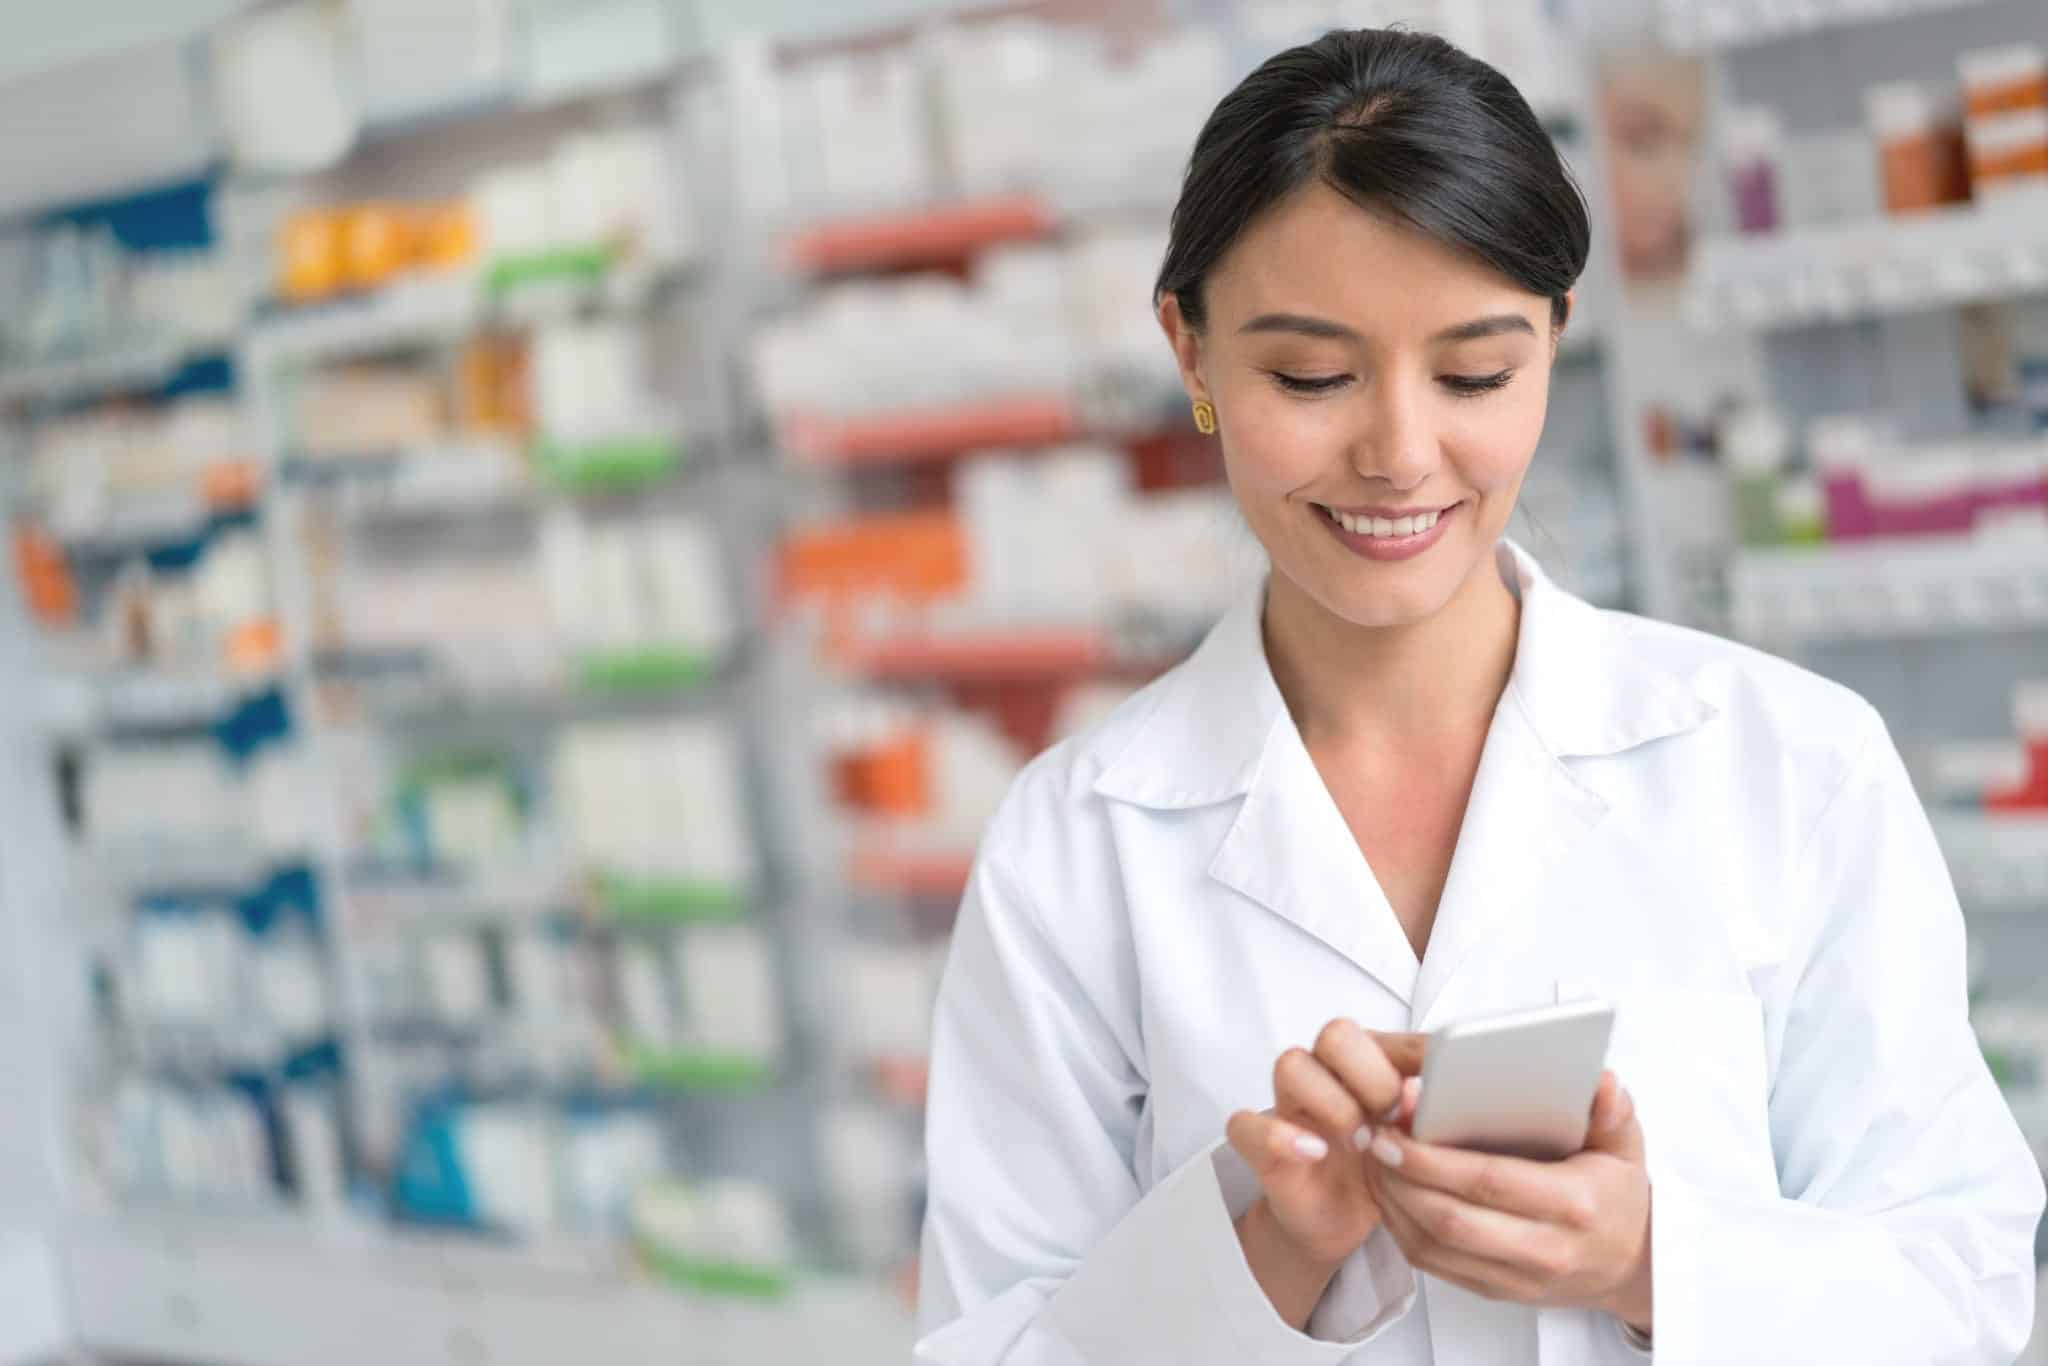 a female healthcare worker uses a phone with medical storage in background.